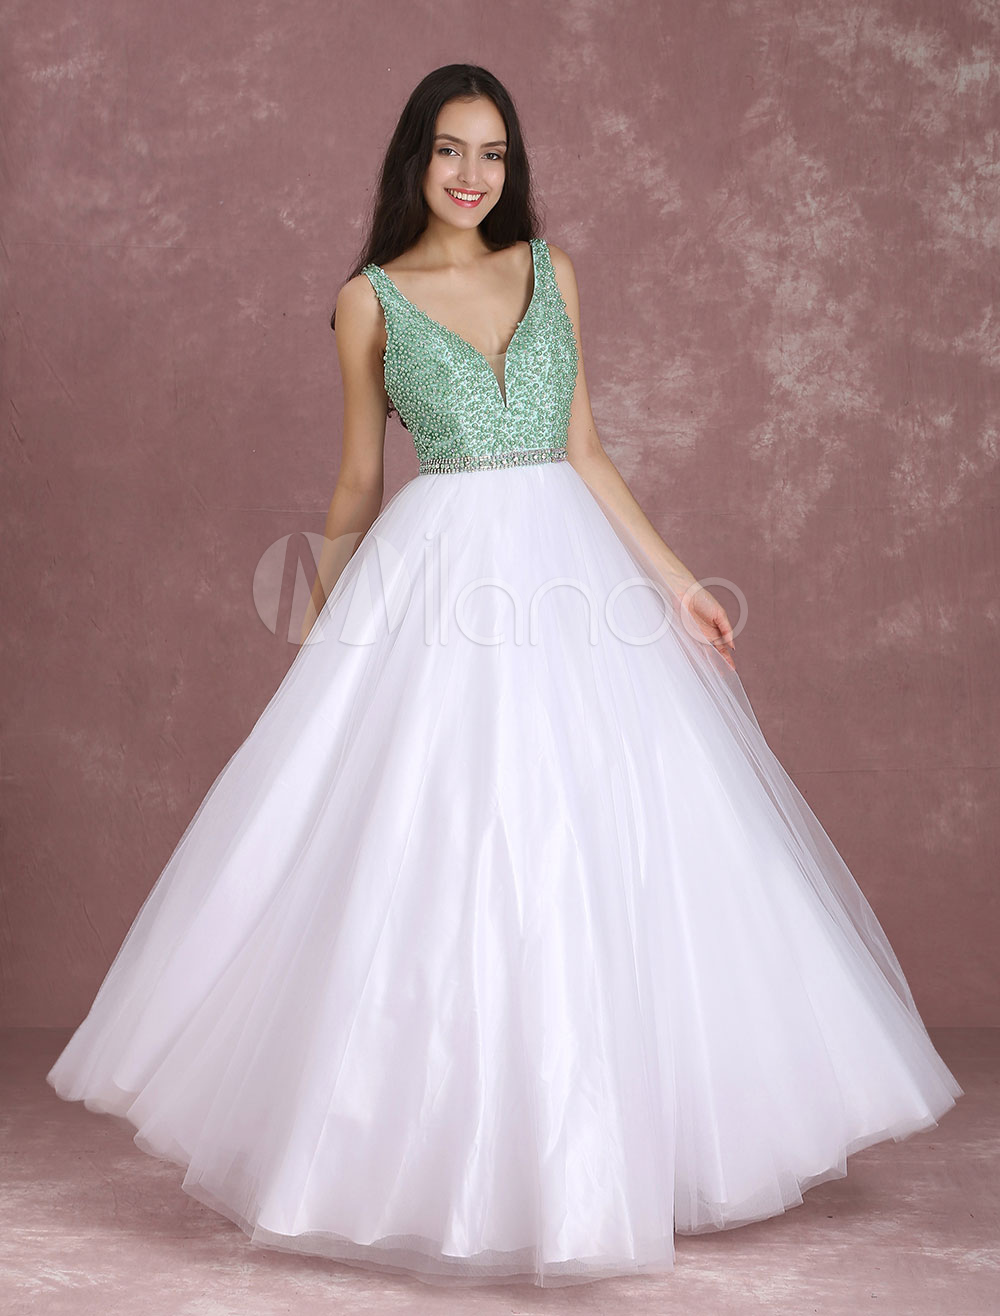 Buy Tulle Prom Dresses Avocado Green Beading Pageant Dresses V Neck Sleeveless Floor Length Quinceanera Dresses for $221.39 in Milanoo store